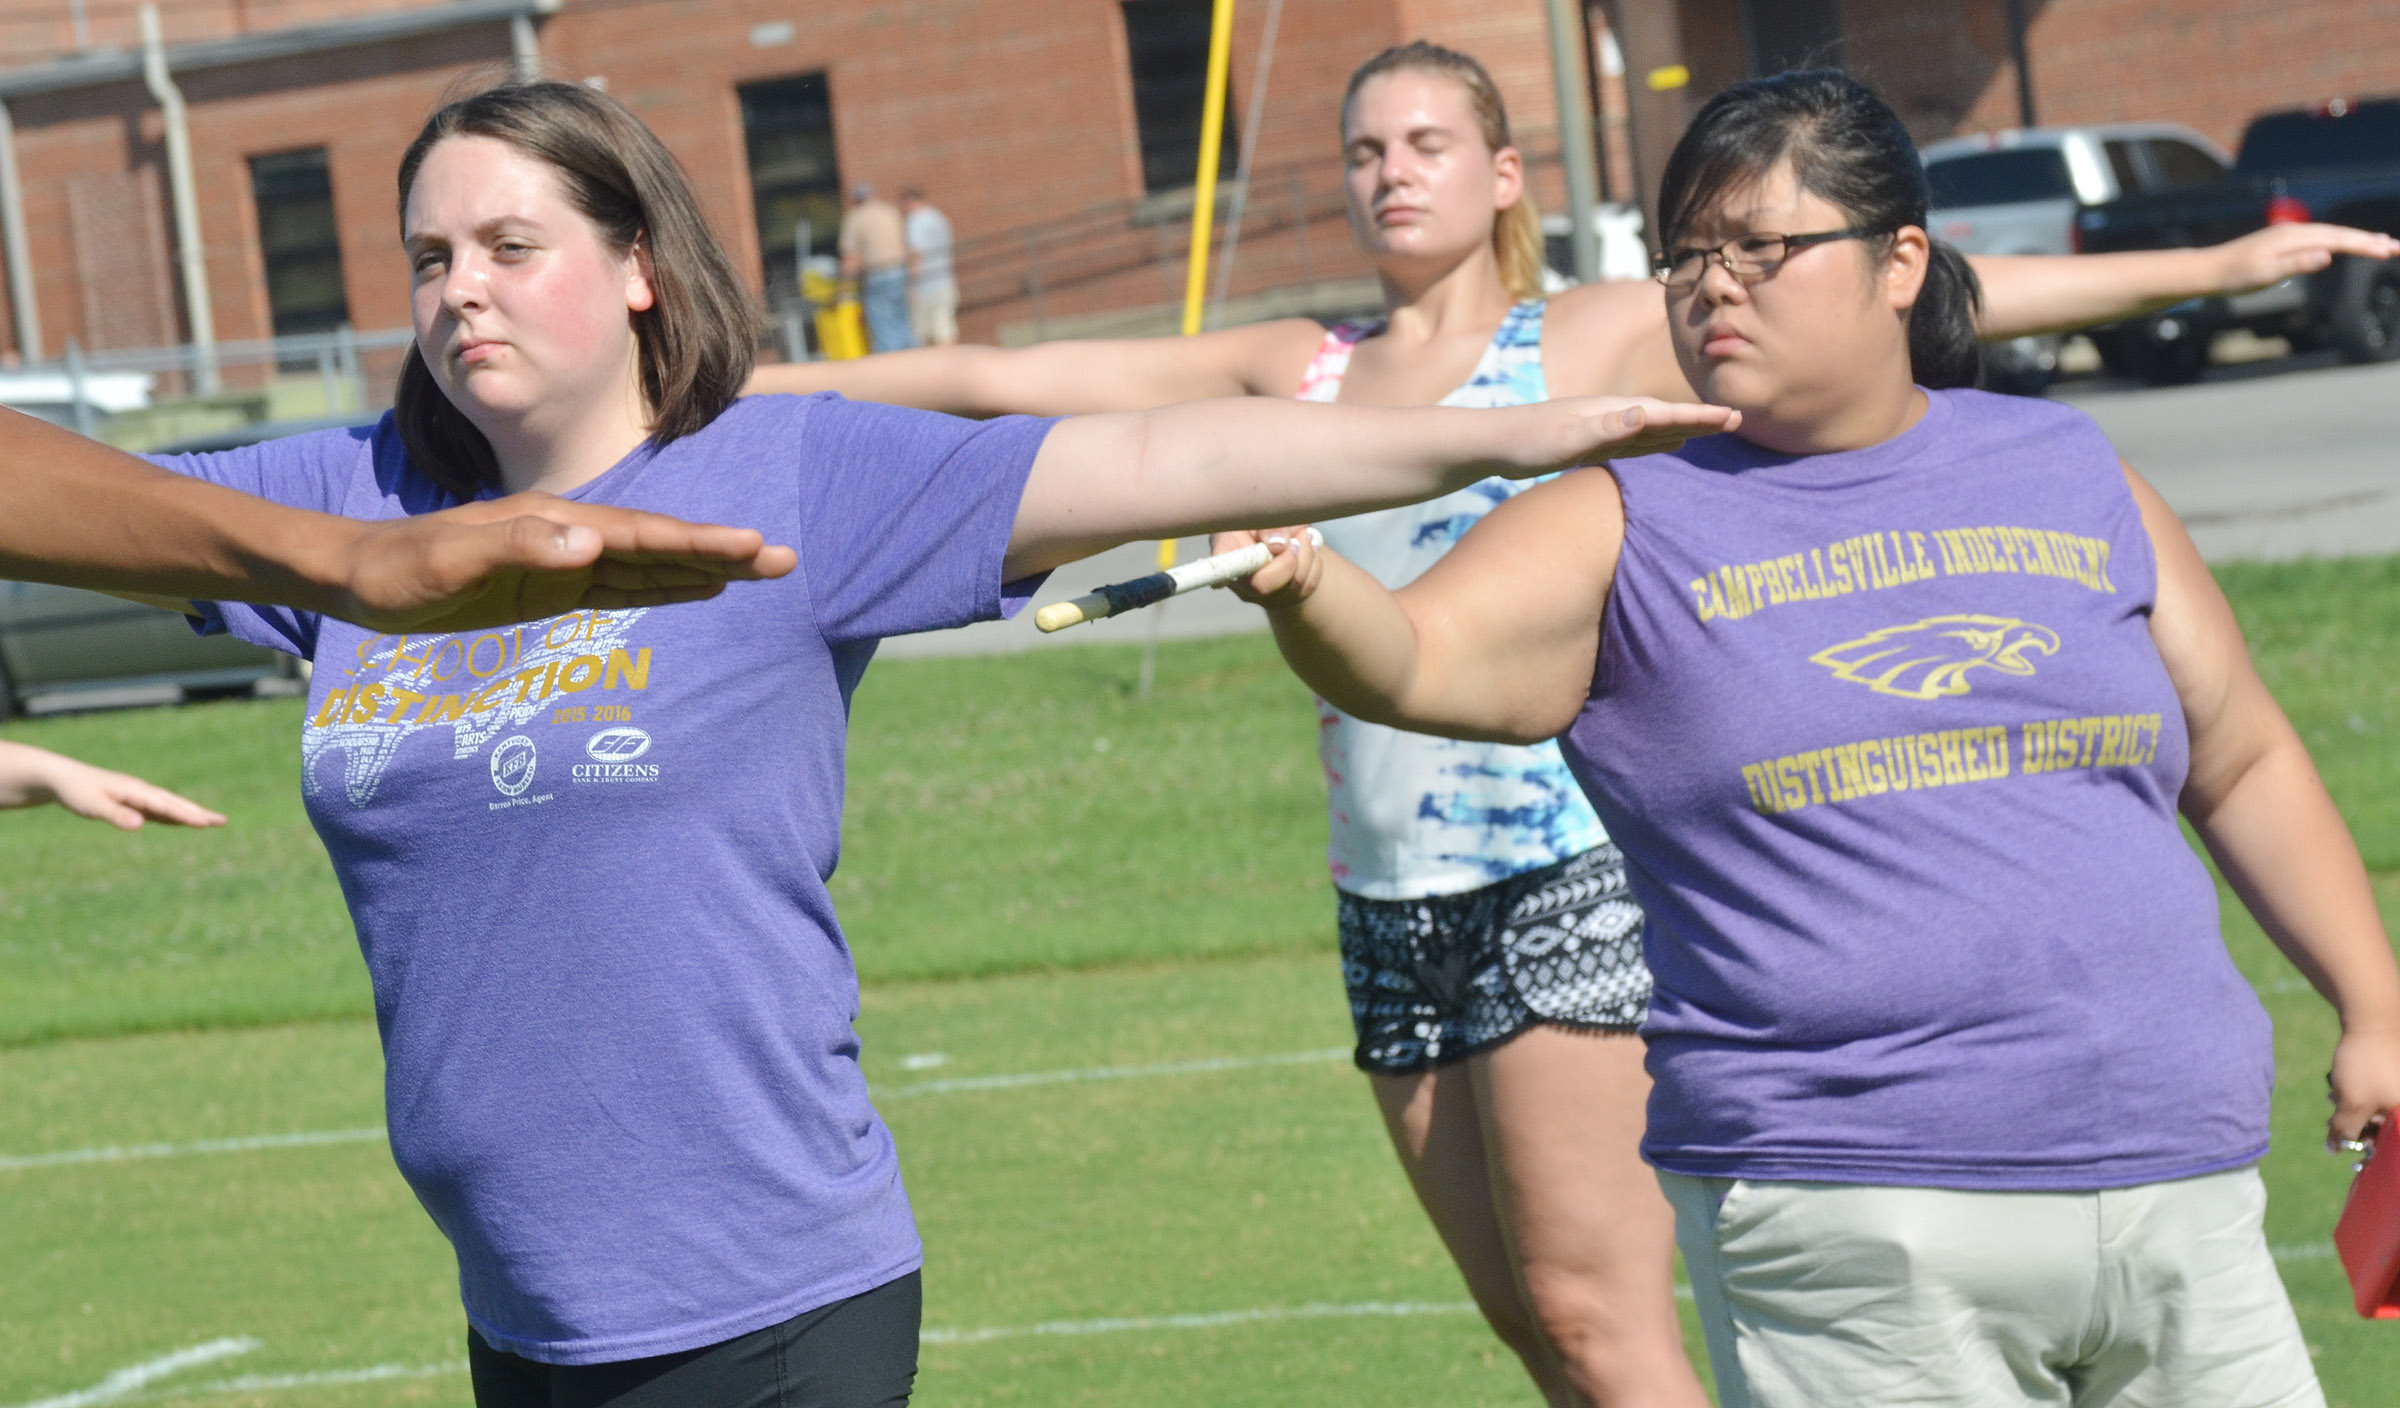 Assistant Band Director Brittany Johnson straightens junior Ruby Hatfield's arms during fundamentals.